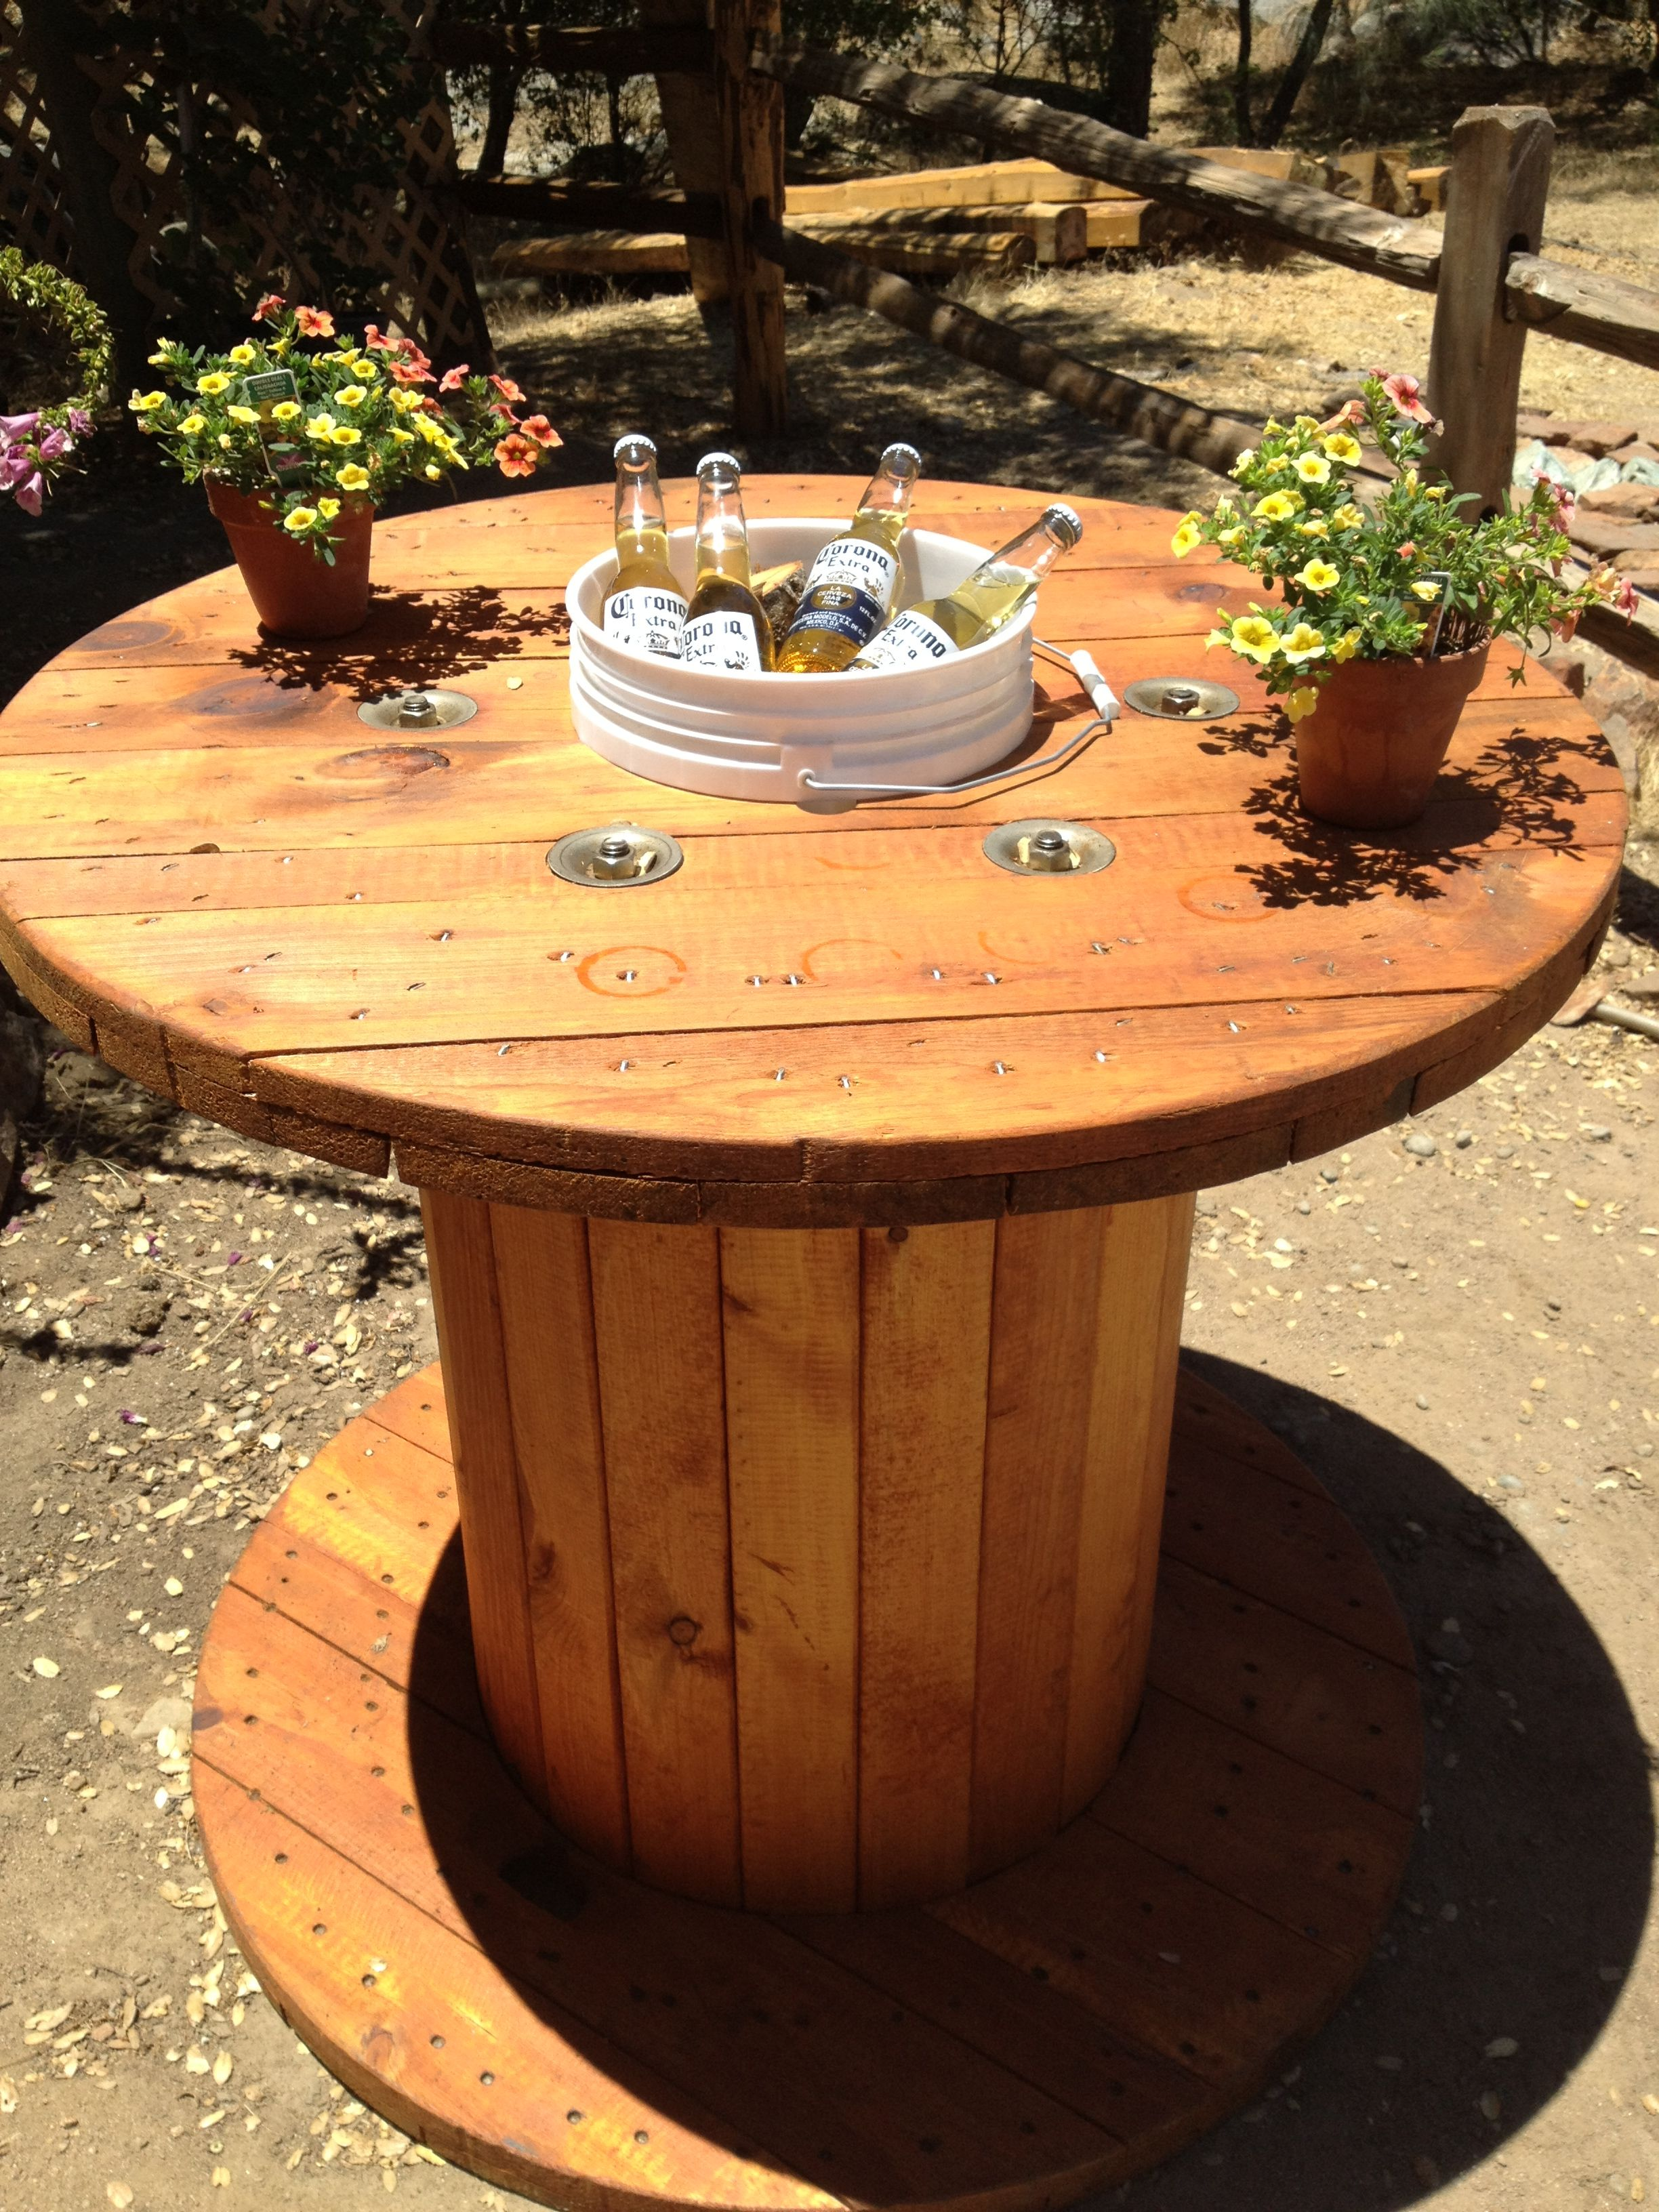 Stehtisch Holz Aussen Wooden Spool Table Sanded And Stained The Spool Cut A